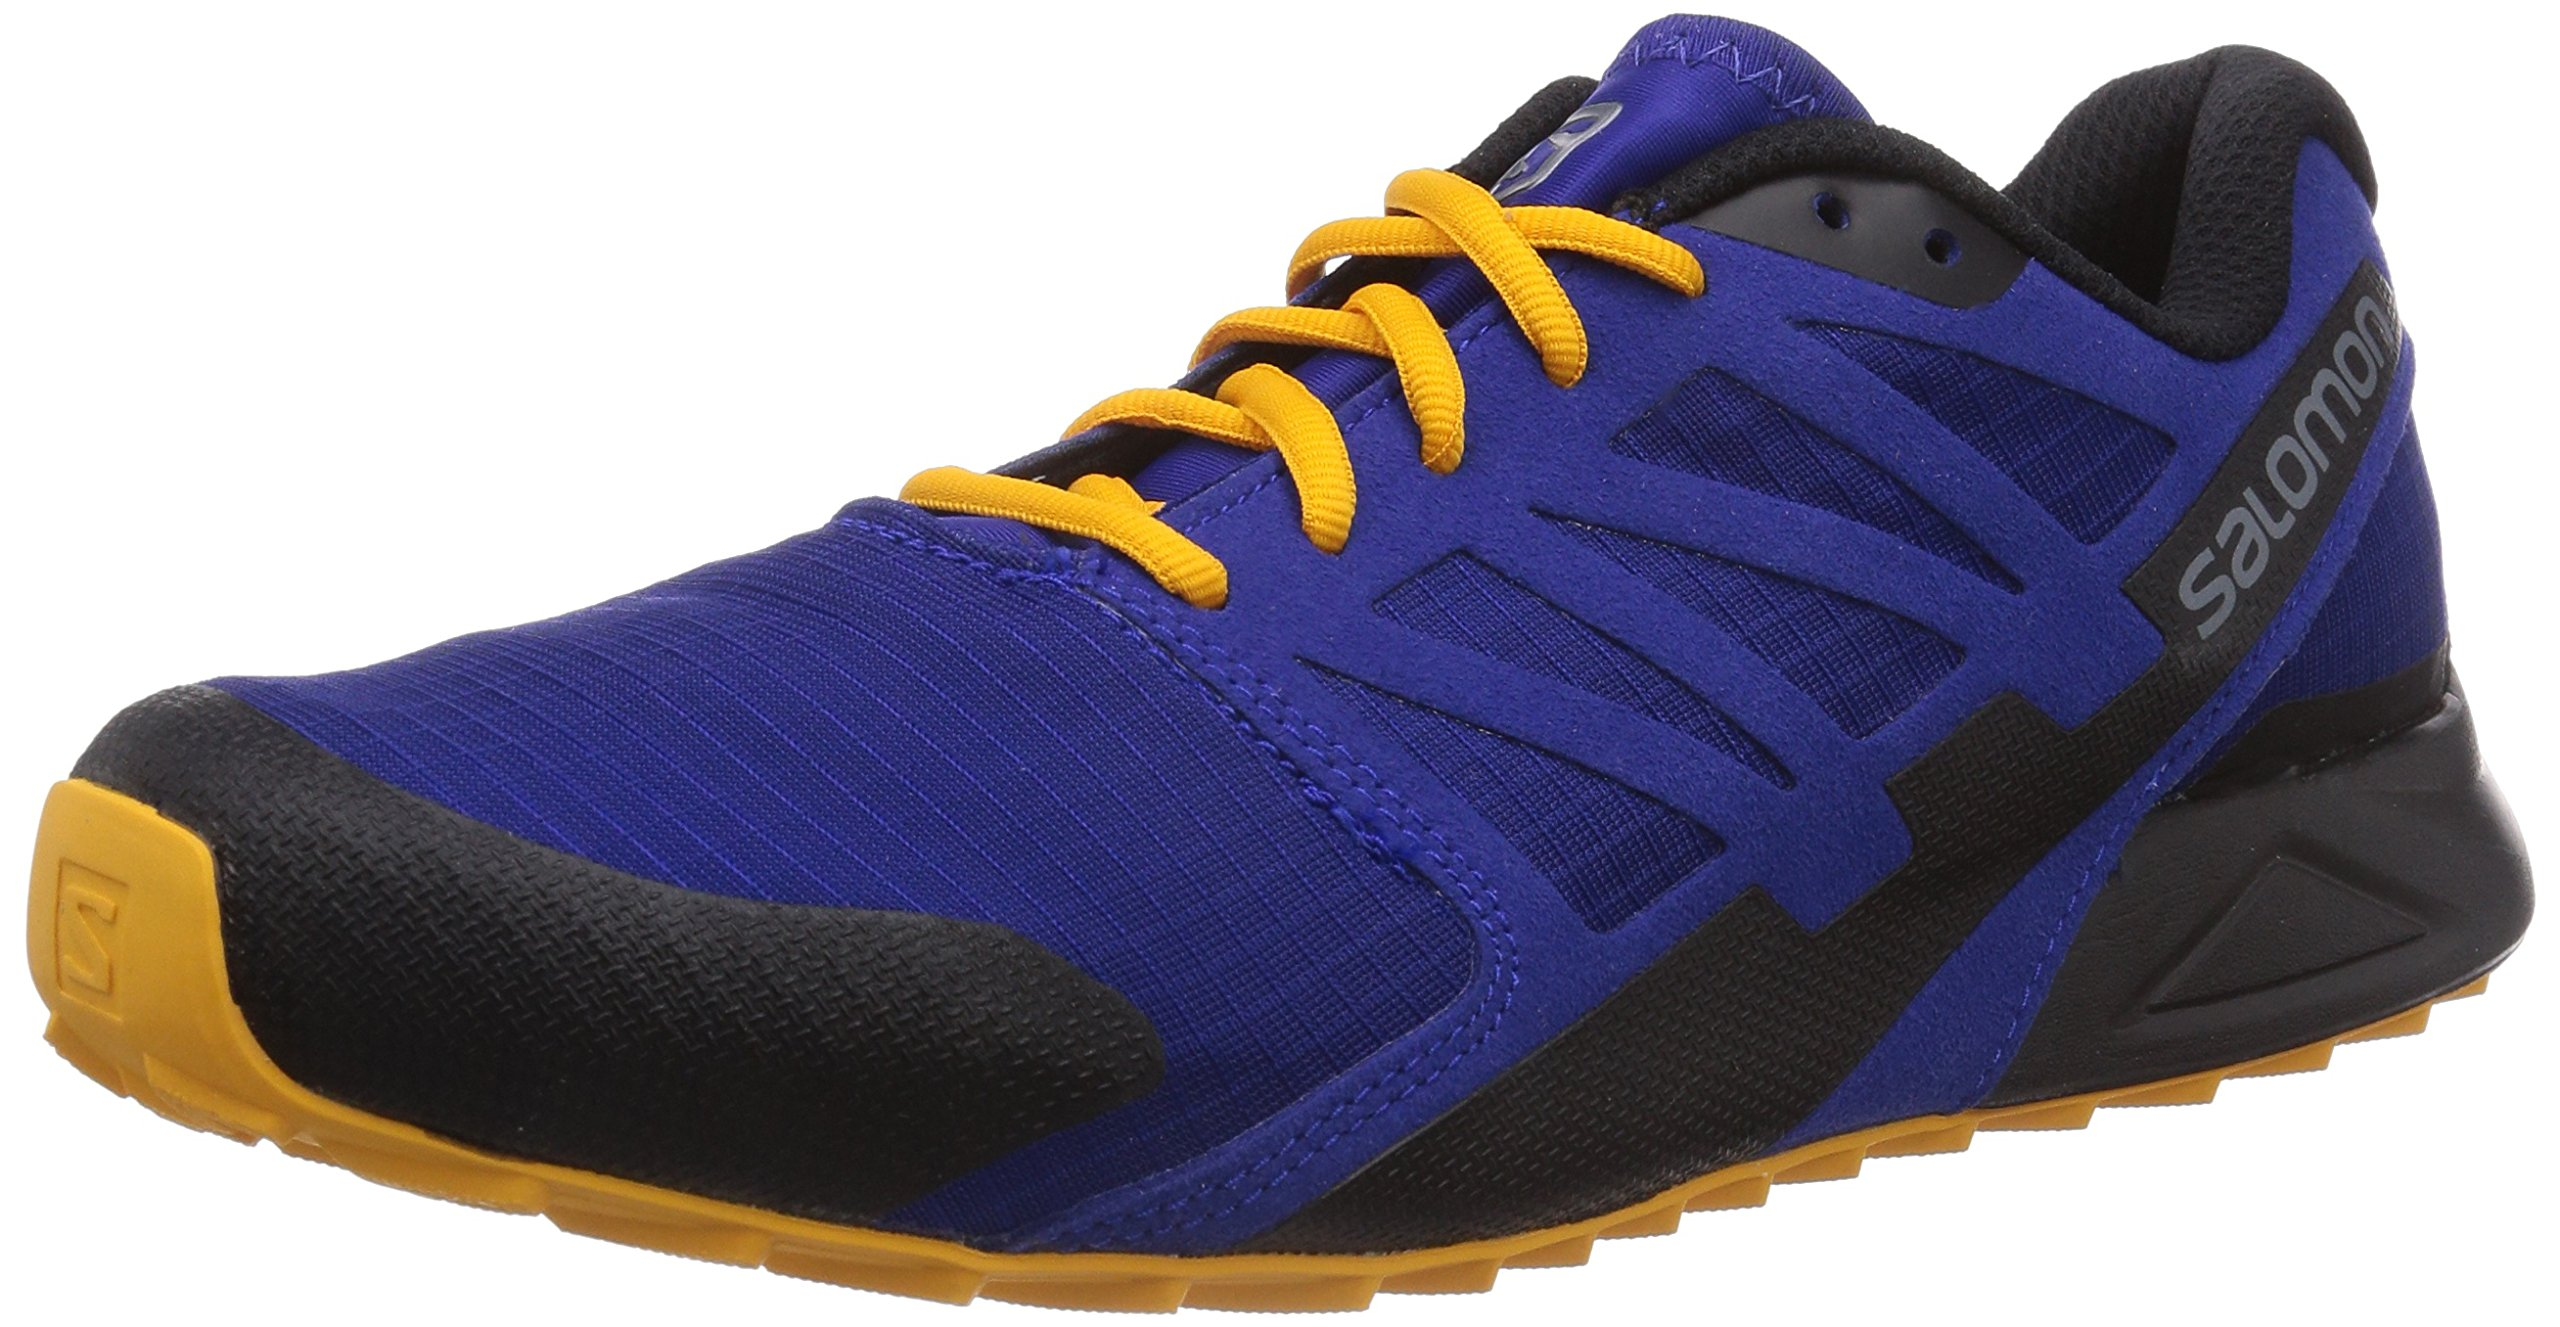 Gold42 yellow Jauneg City bleu noir Blue Trail or black 3 CrossChaussures De 2 Eu Salomon HommeMulticolore zqSMpjVGLU